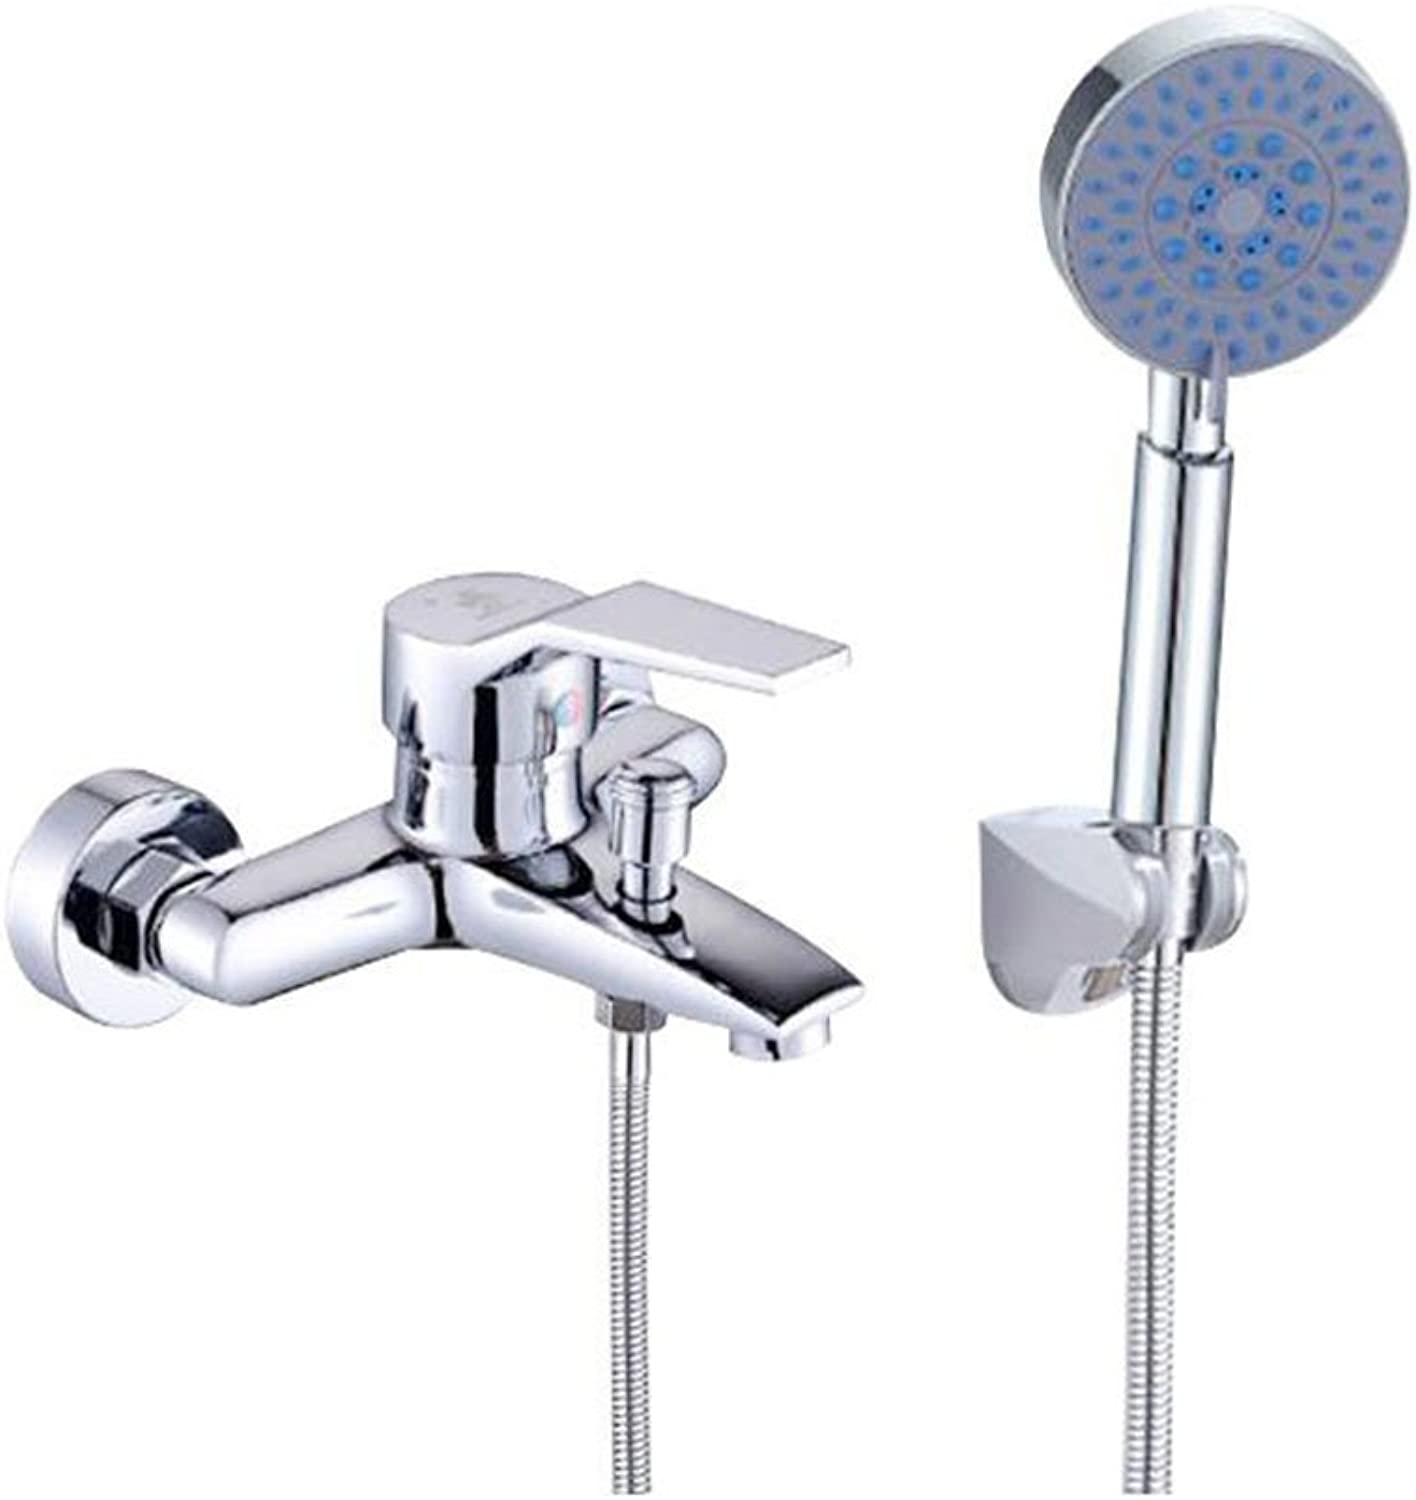 Bathing Simple Shower Suit Copper Faucet Shower Set Concealed Wall Entry Shower Head With Handheld Shower Separately